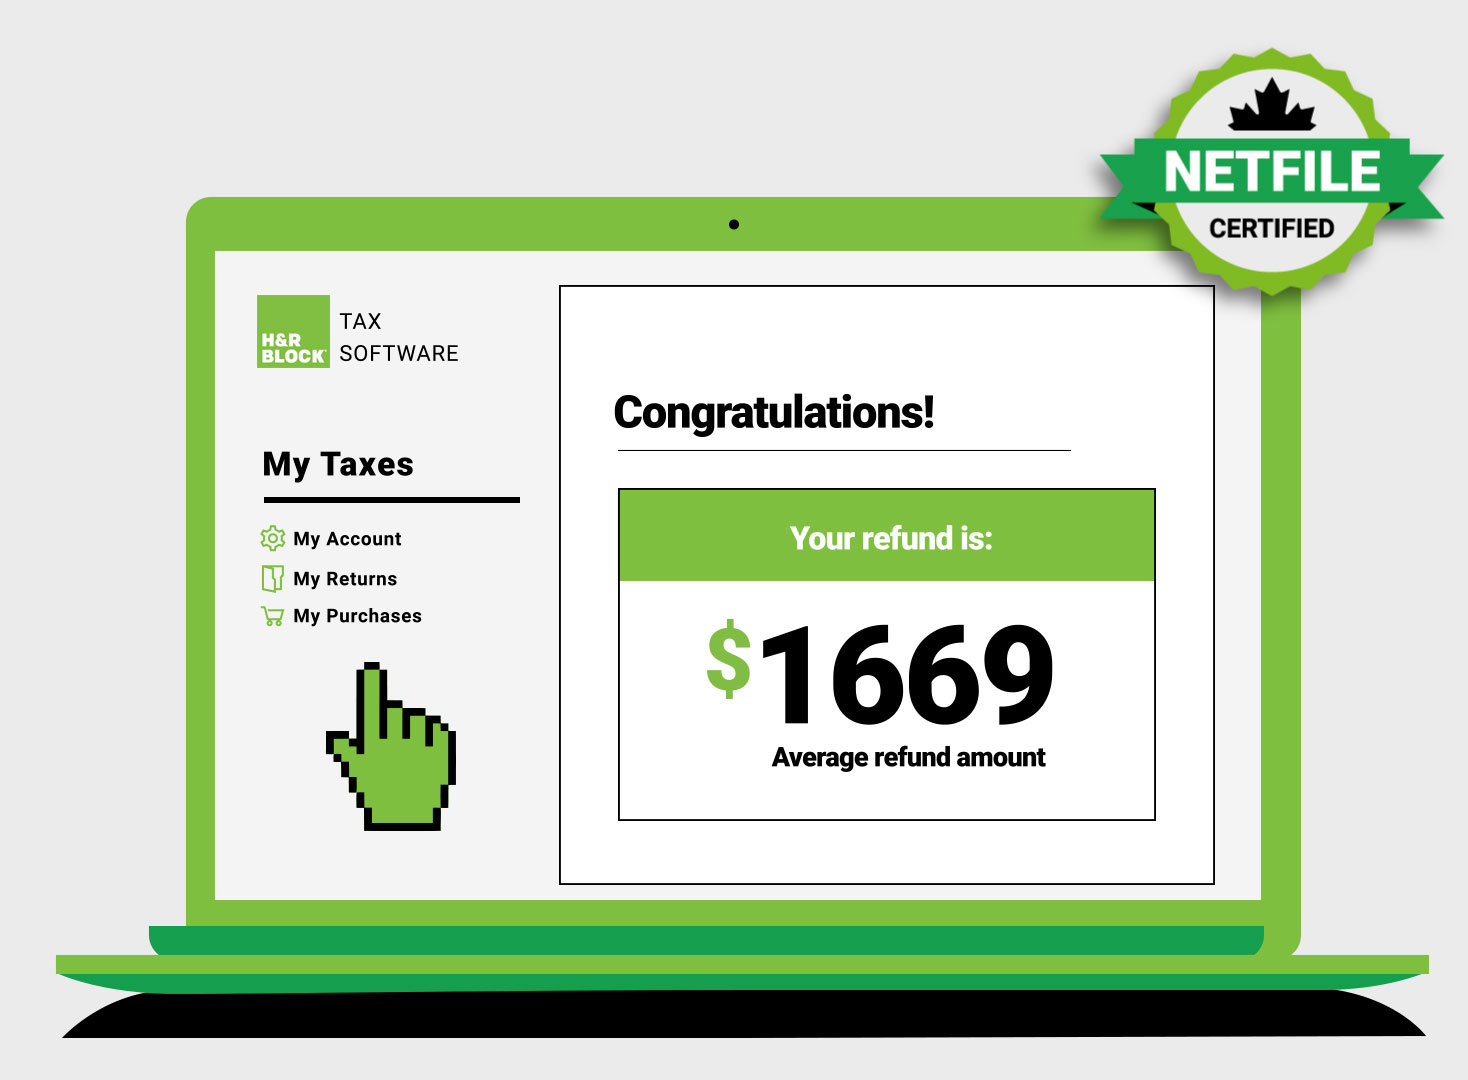 H&r block login to my account